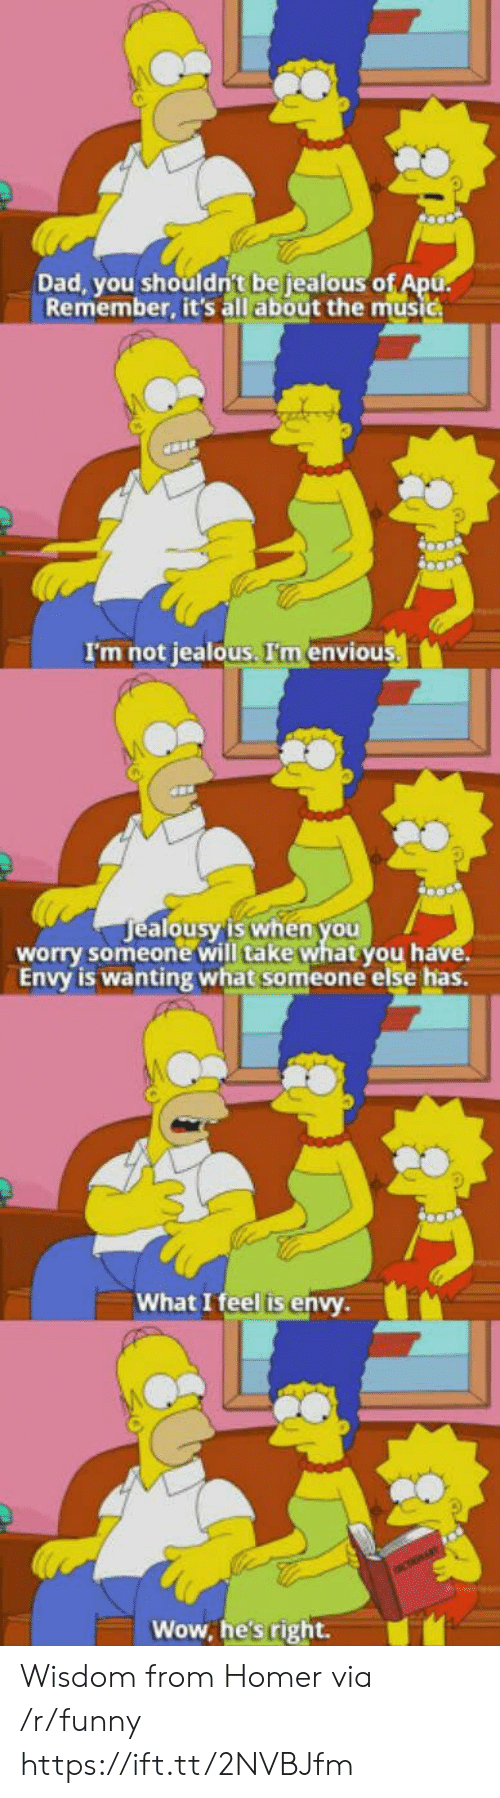 alo: Dad, you shouldn't be jealous o  Remember, it's all about the music  I'm not jealous. I'm envious  ealousy'is when you  alo  worry someone will take what you h  Envy is wanting what someone else has.  What I feel is envy  Wow, he's right. Wisdom from Homer via /r/funny https://ift.tt/2NVBJfm